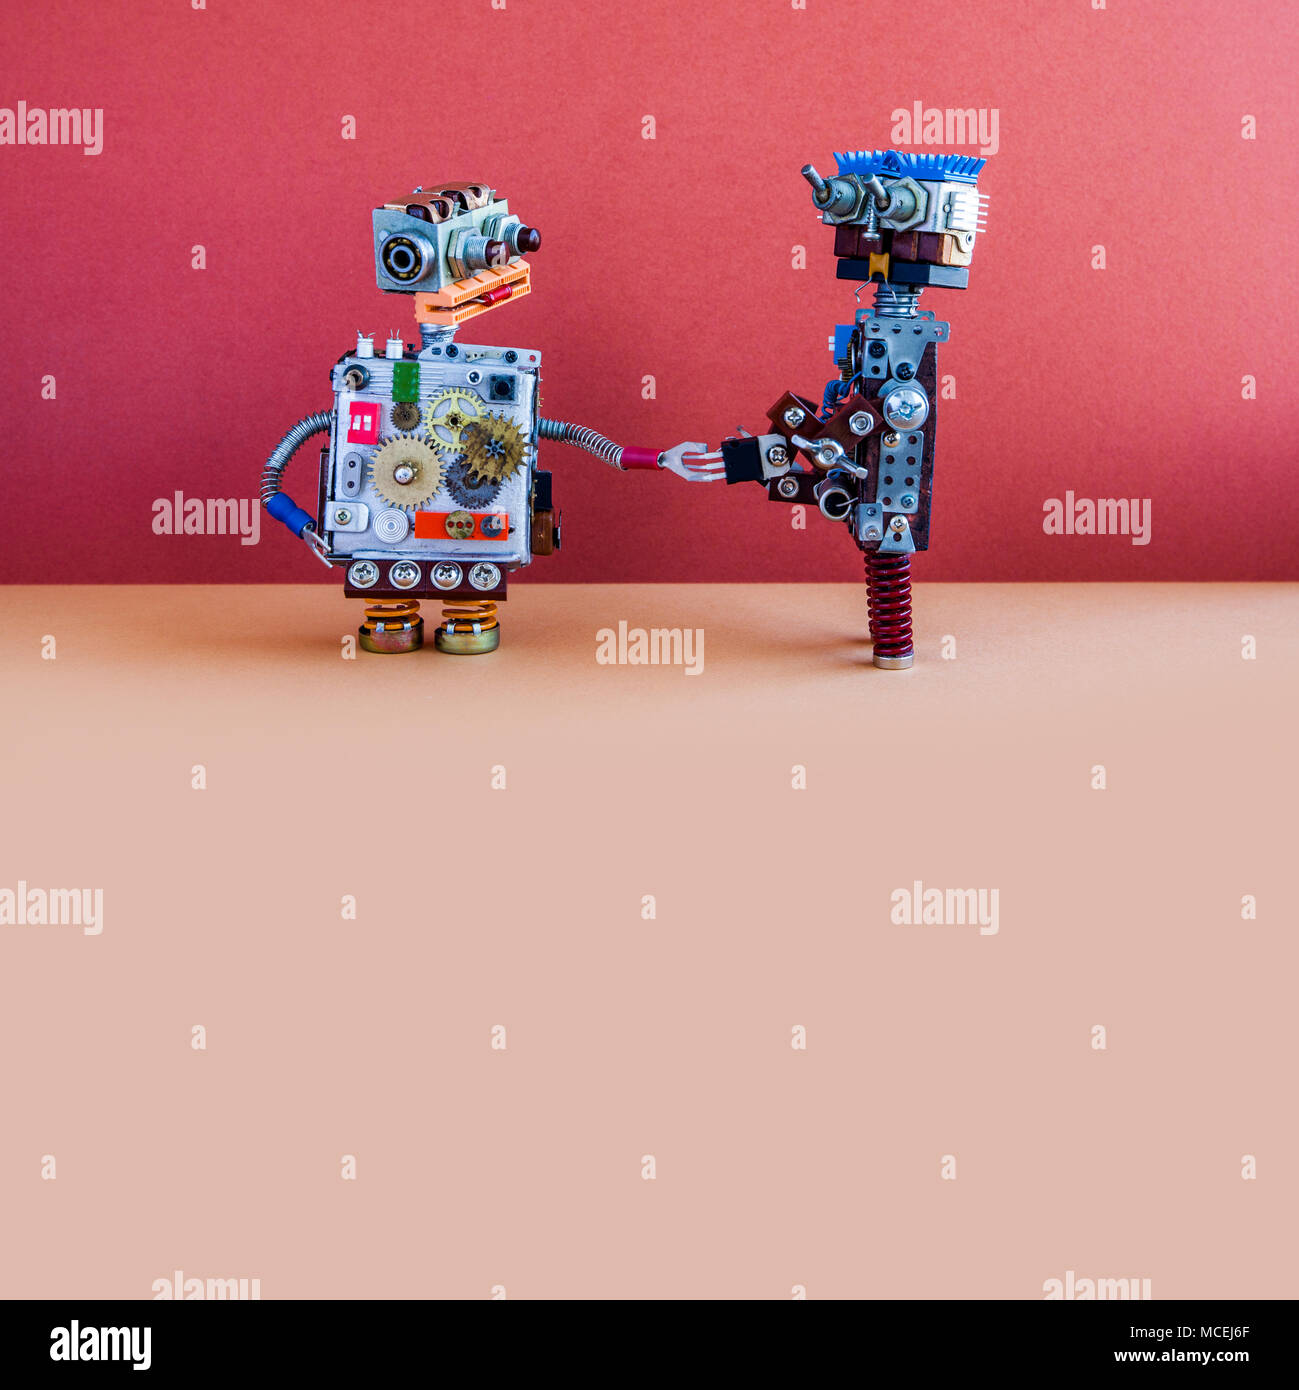 Two robots greet each other. Handshake of cybernetic mechanical cyborgs. Creative design robotic toys, red wall brown floor background. Copy space - Stock Image